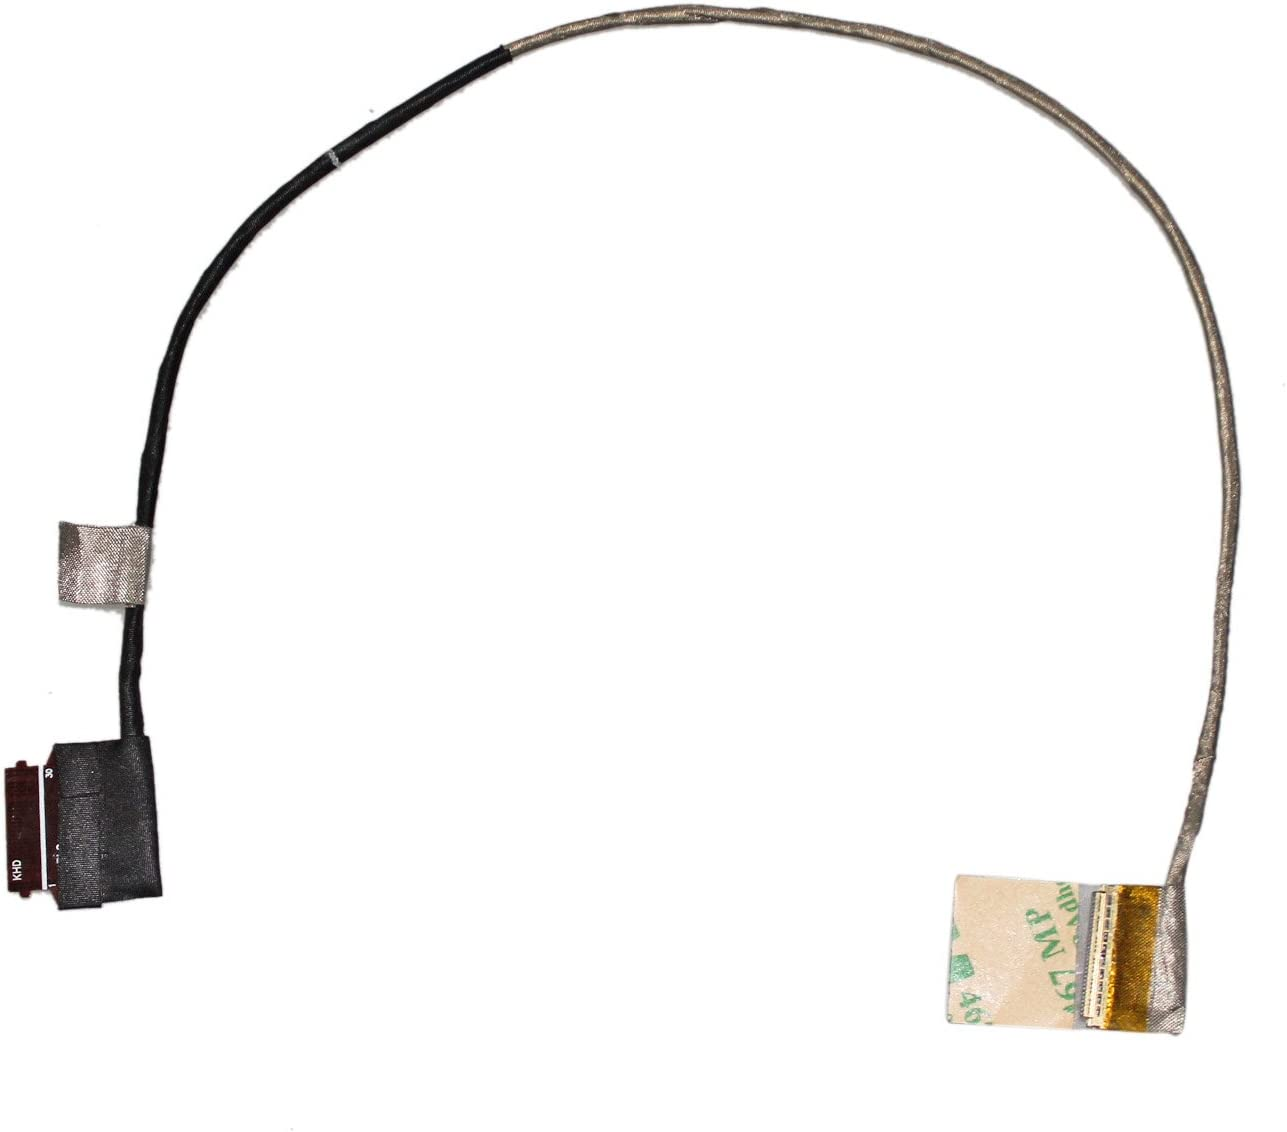 Gintai LCD BLT EDP HD Cable Replacement For Toshiba L50-C L50D-C C55D-C C55T-C P55T-C DD0BLQLC020 DD0BLQLC021 DD0BLQLC030 DD0BLQLC040 DD0BLQLC050